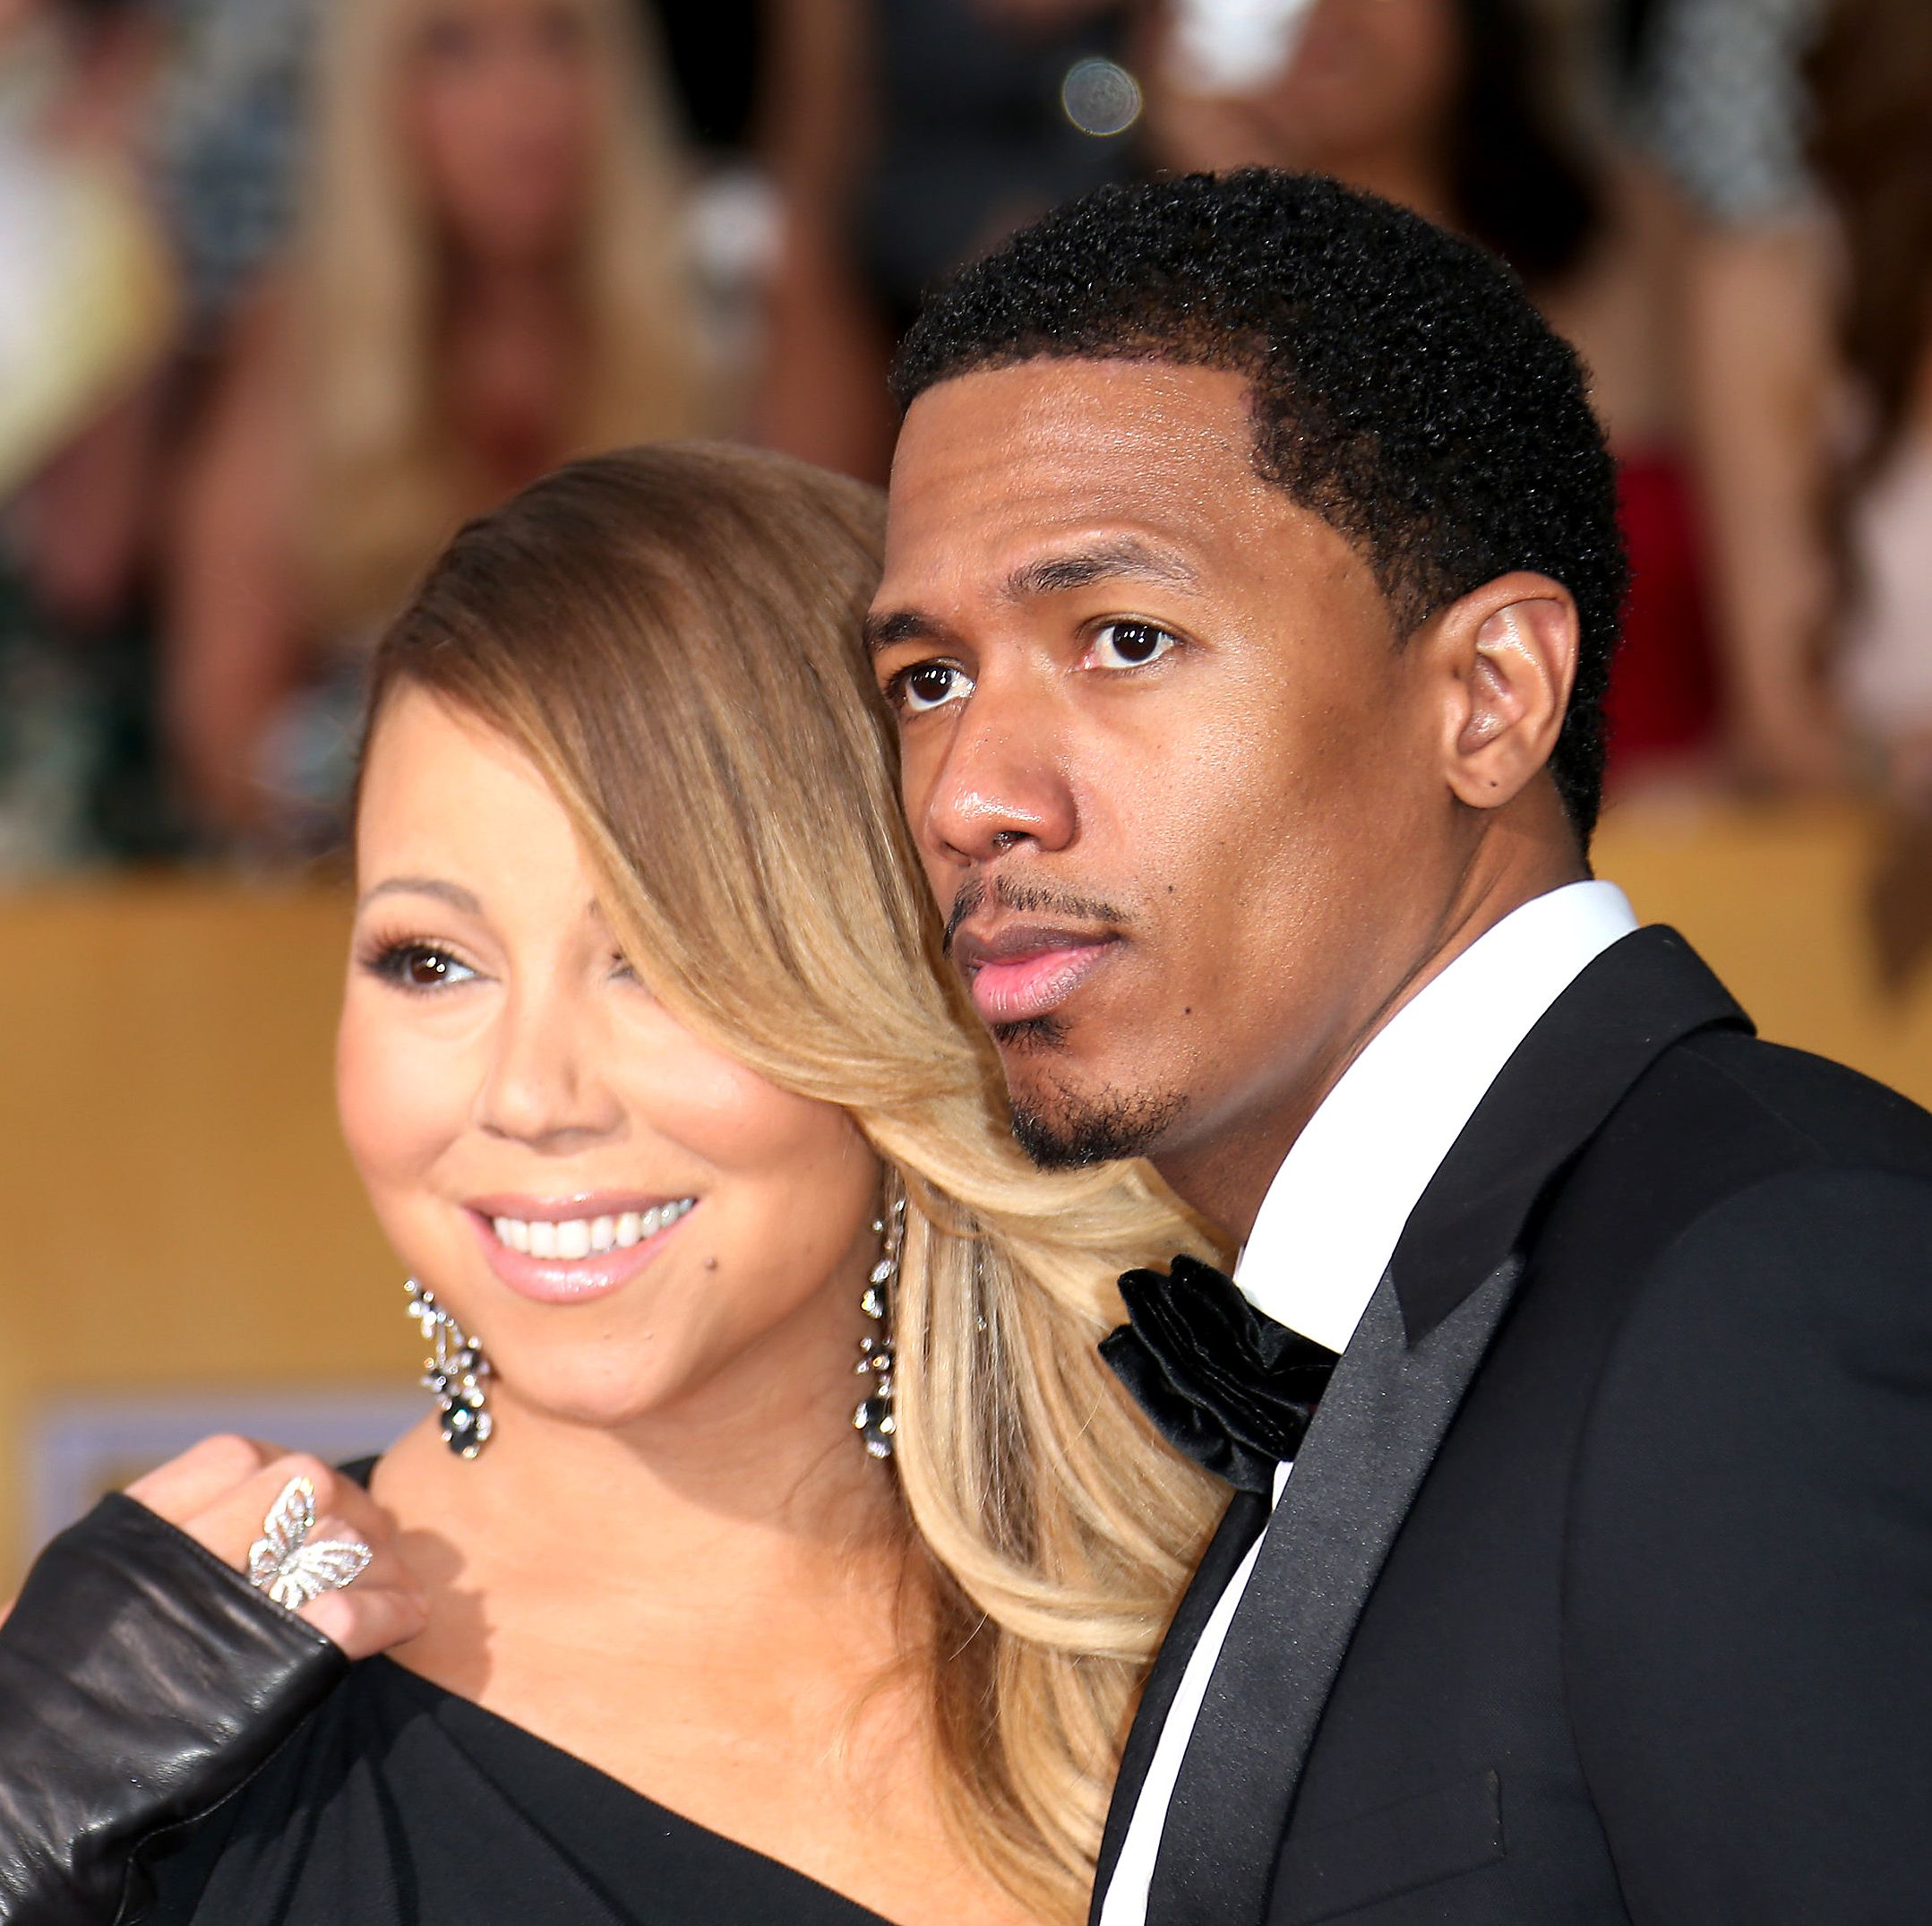 Mariah Carey and Nick Cannon People raised eyebrows when Mariah and Nick first got together, given that she was 11 years his senior. But Nick seemed so smitten with Mariah (he even tattooed her name across his back) that it looked like it was destined to work.